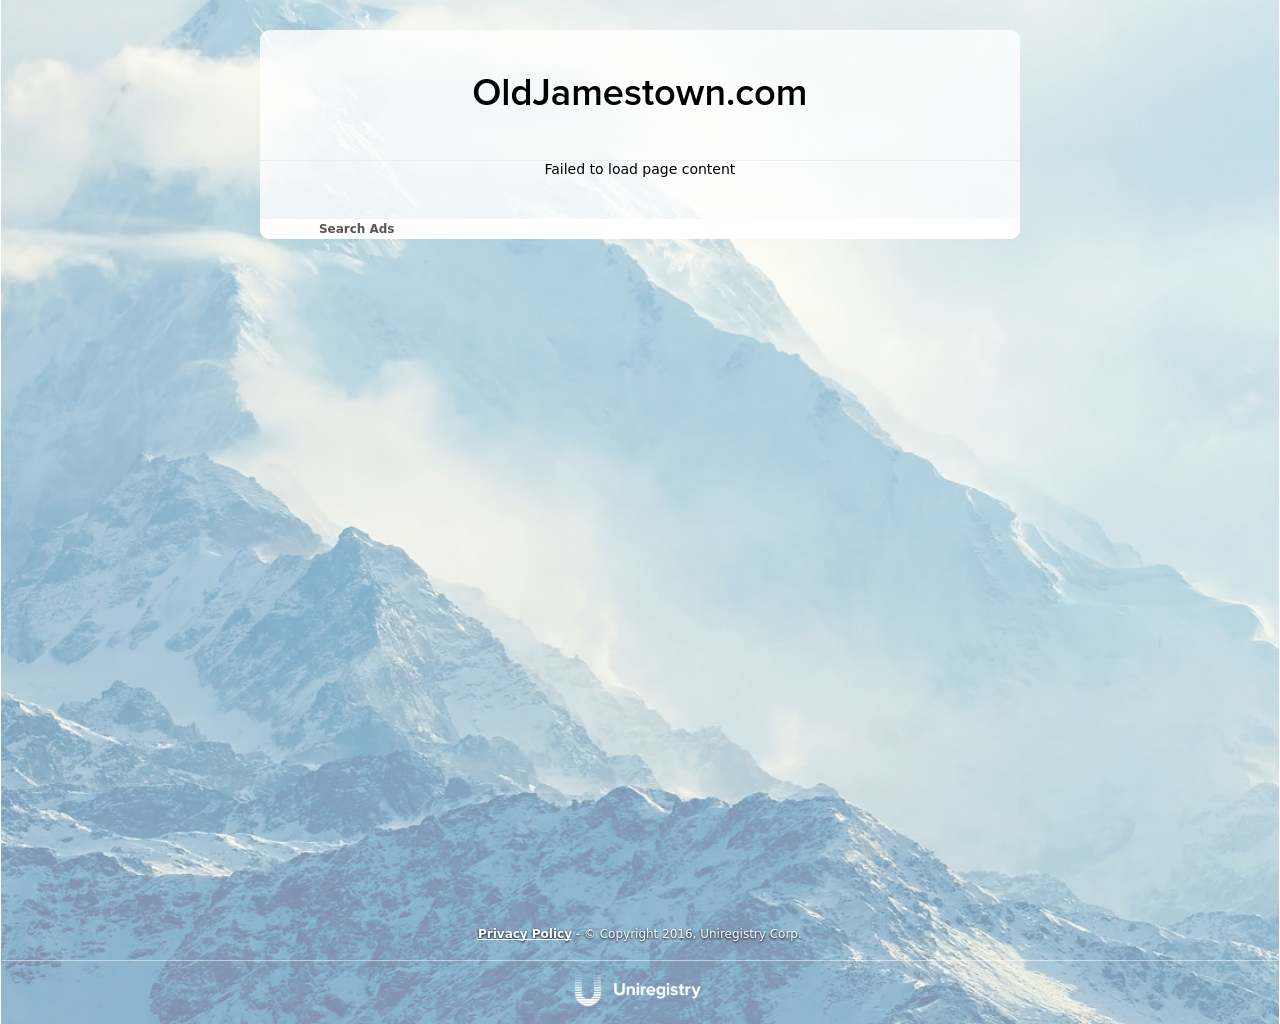 OldJamestown.com-Advertising-Reviews-Pricing